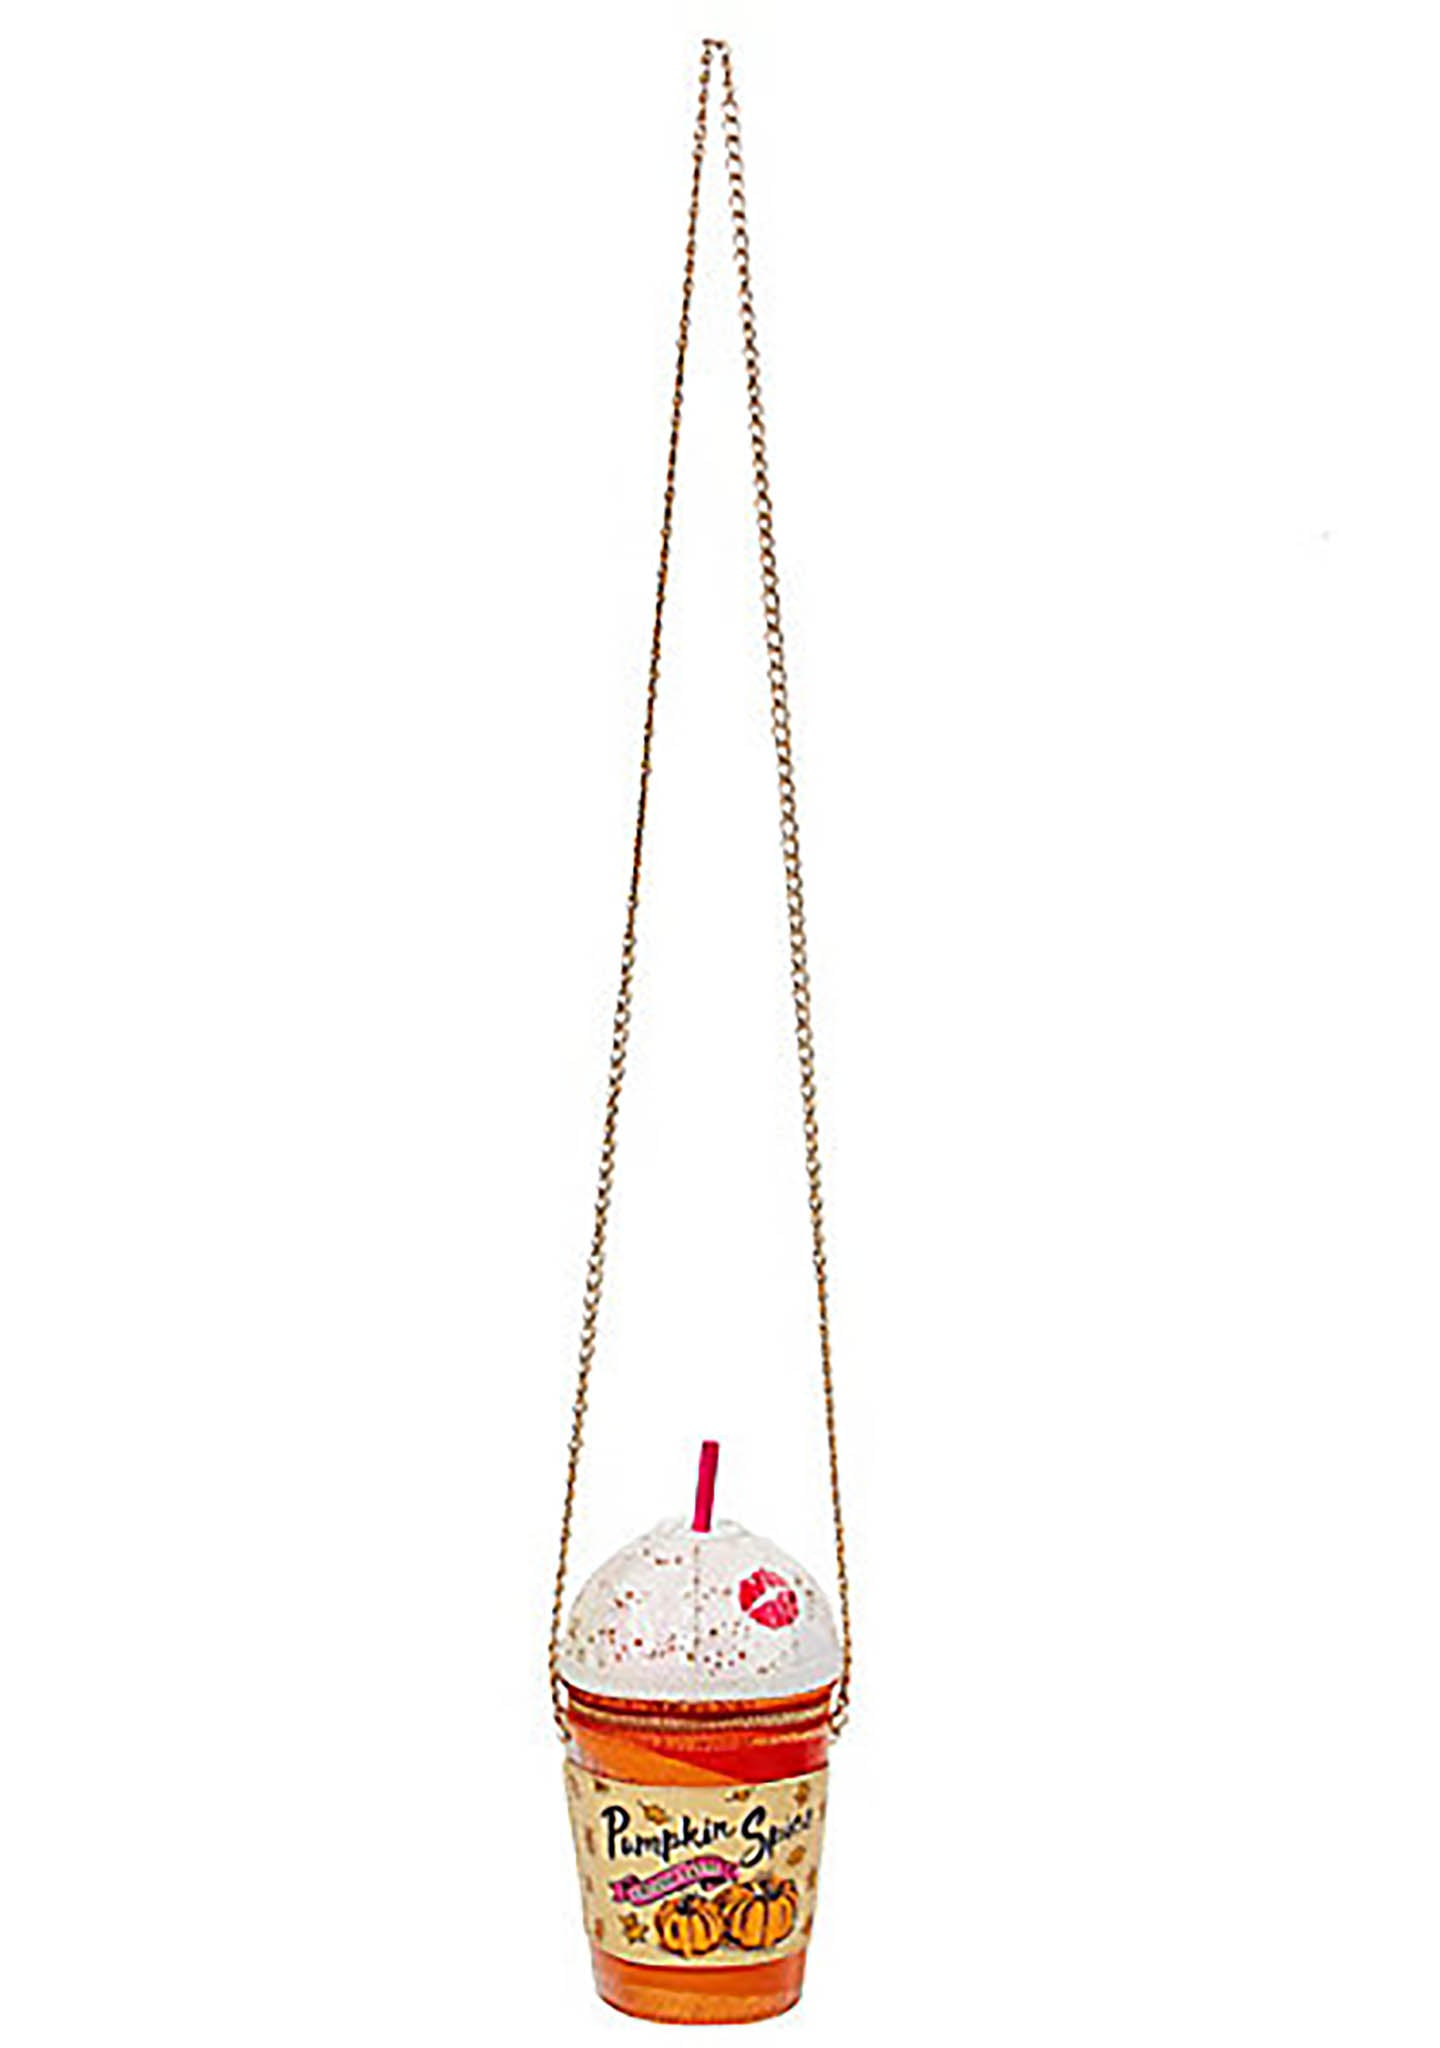 Sweata Weatha Kitsch Crossbody Bag